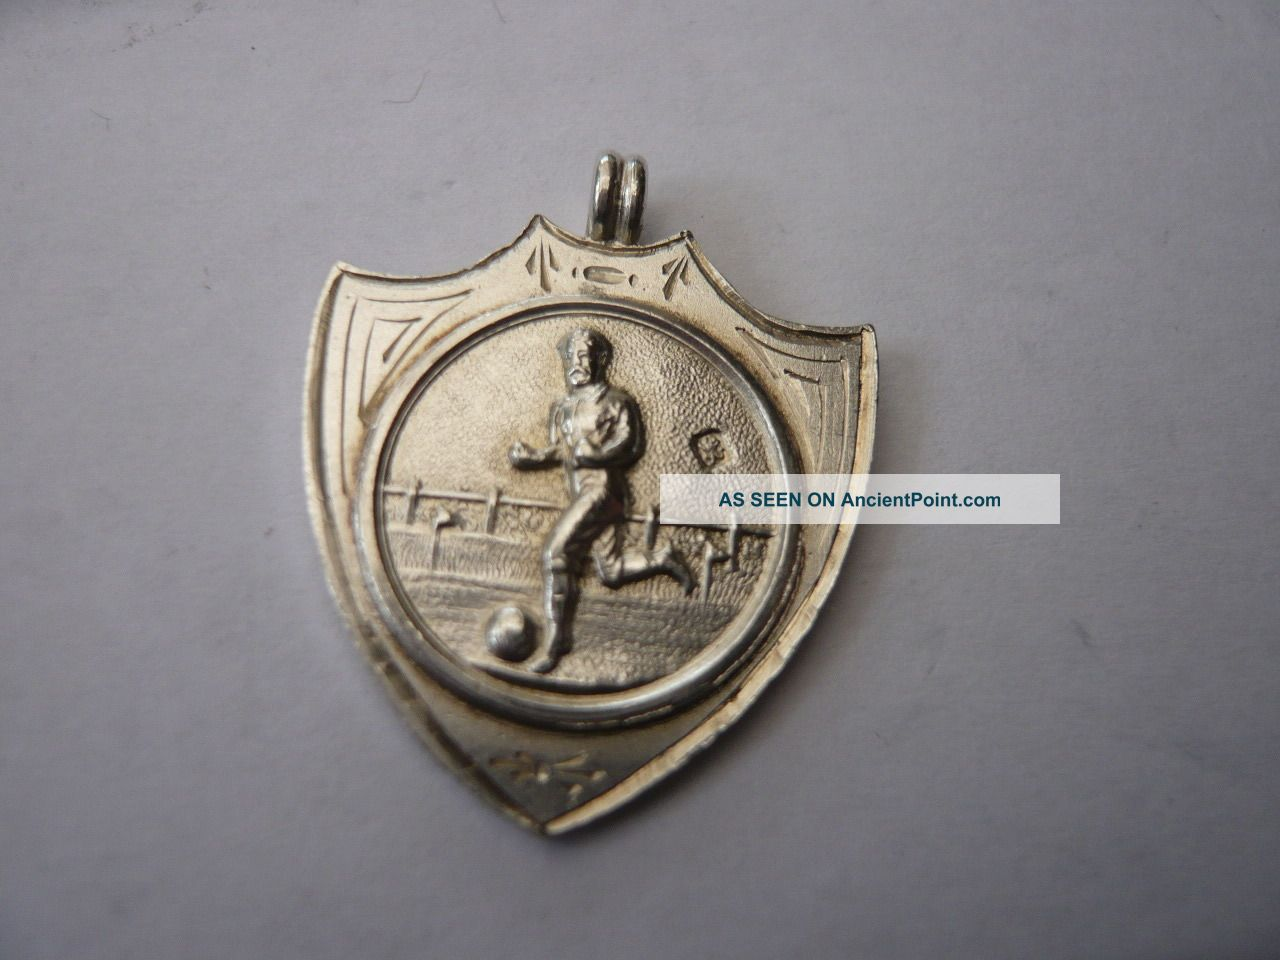 Vintage Sterling Silver Pocket Watch Chain Fob Medal Football Pocket Watches/ Chains/ Fobs photo